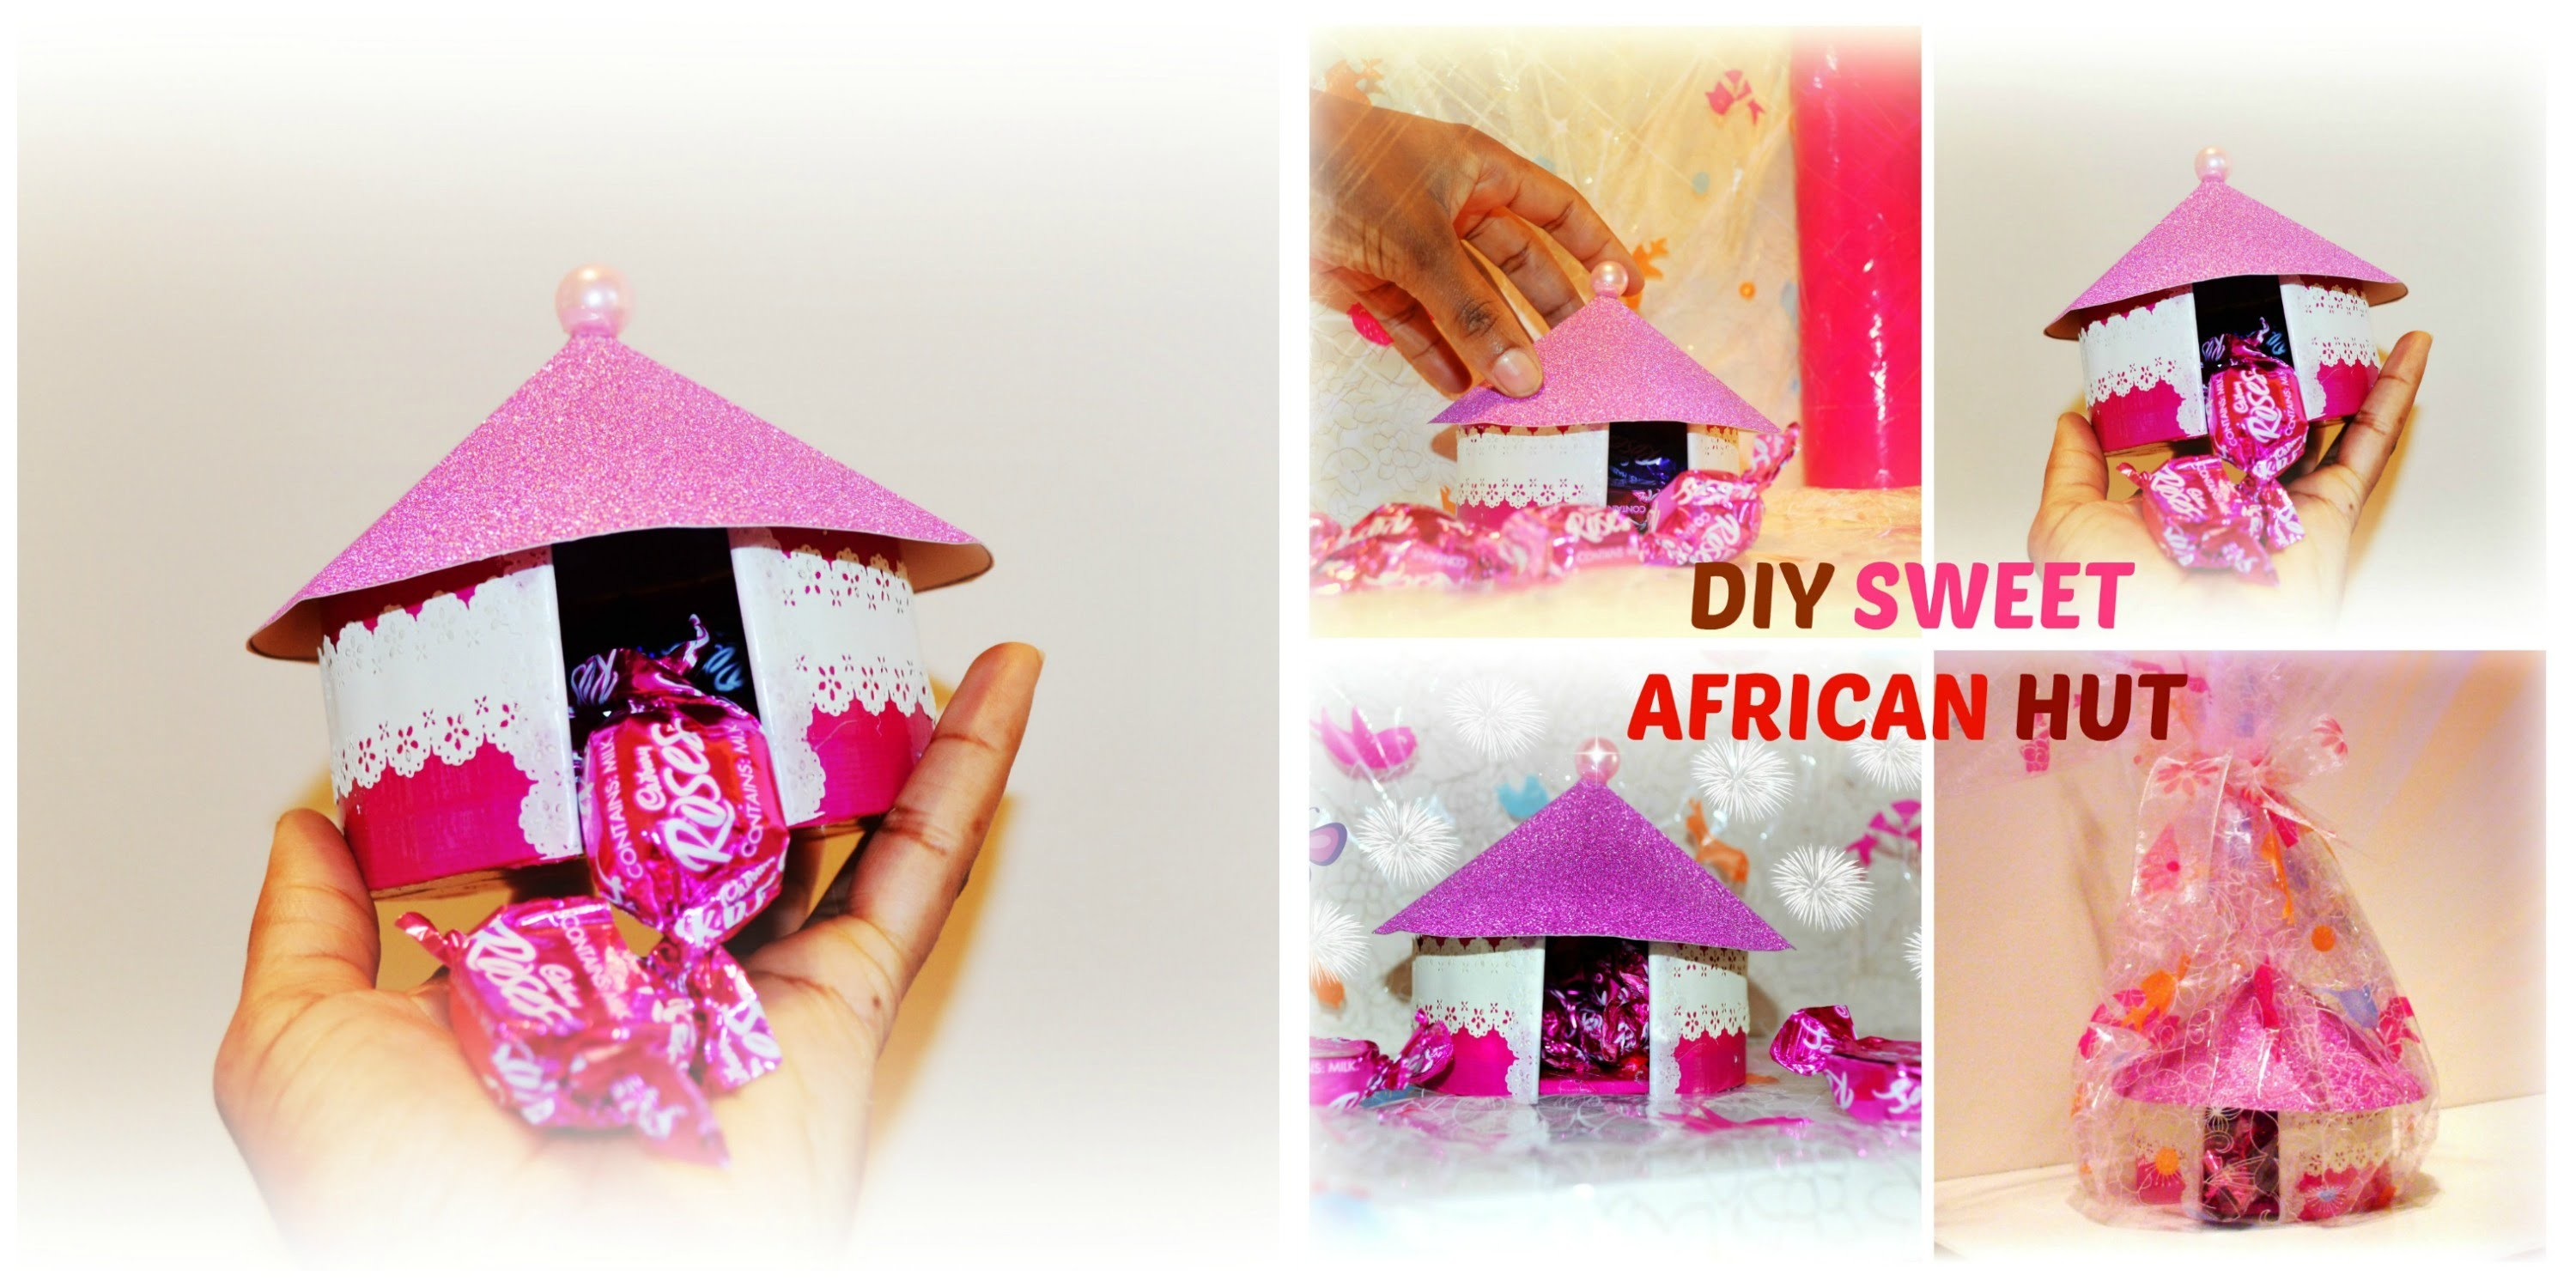 Diy Crafts : How to make a gift cardboard box African sweet hut, easy project.